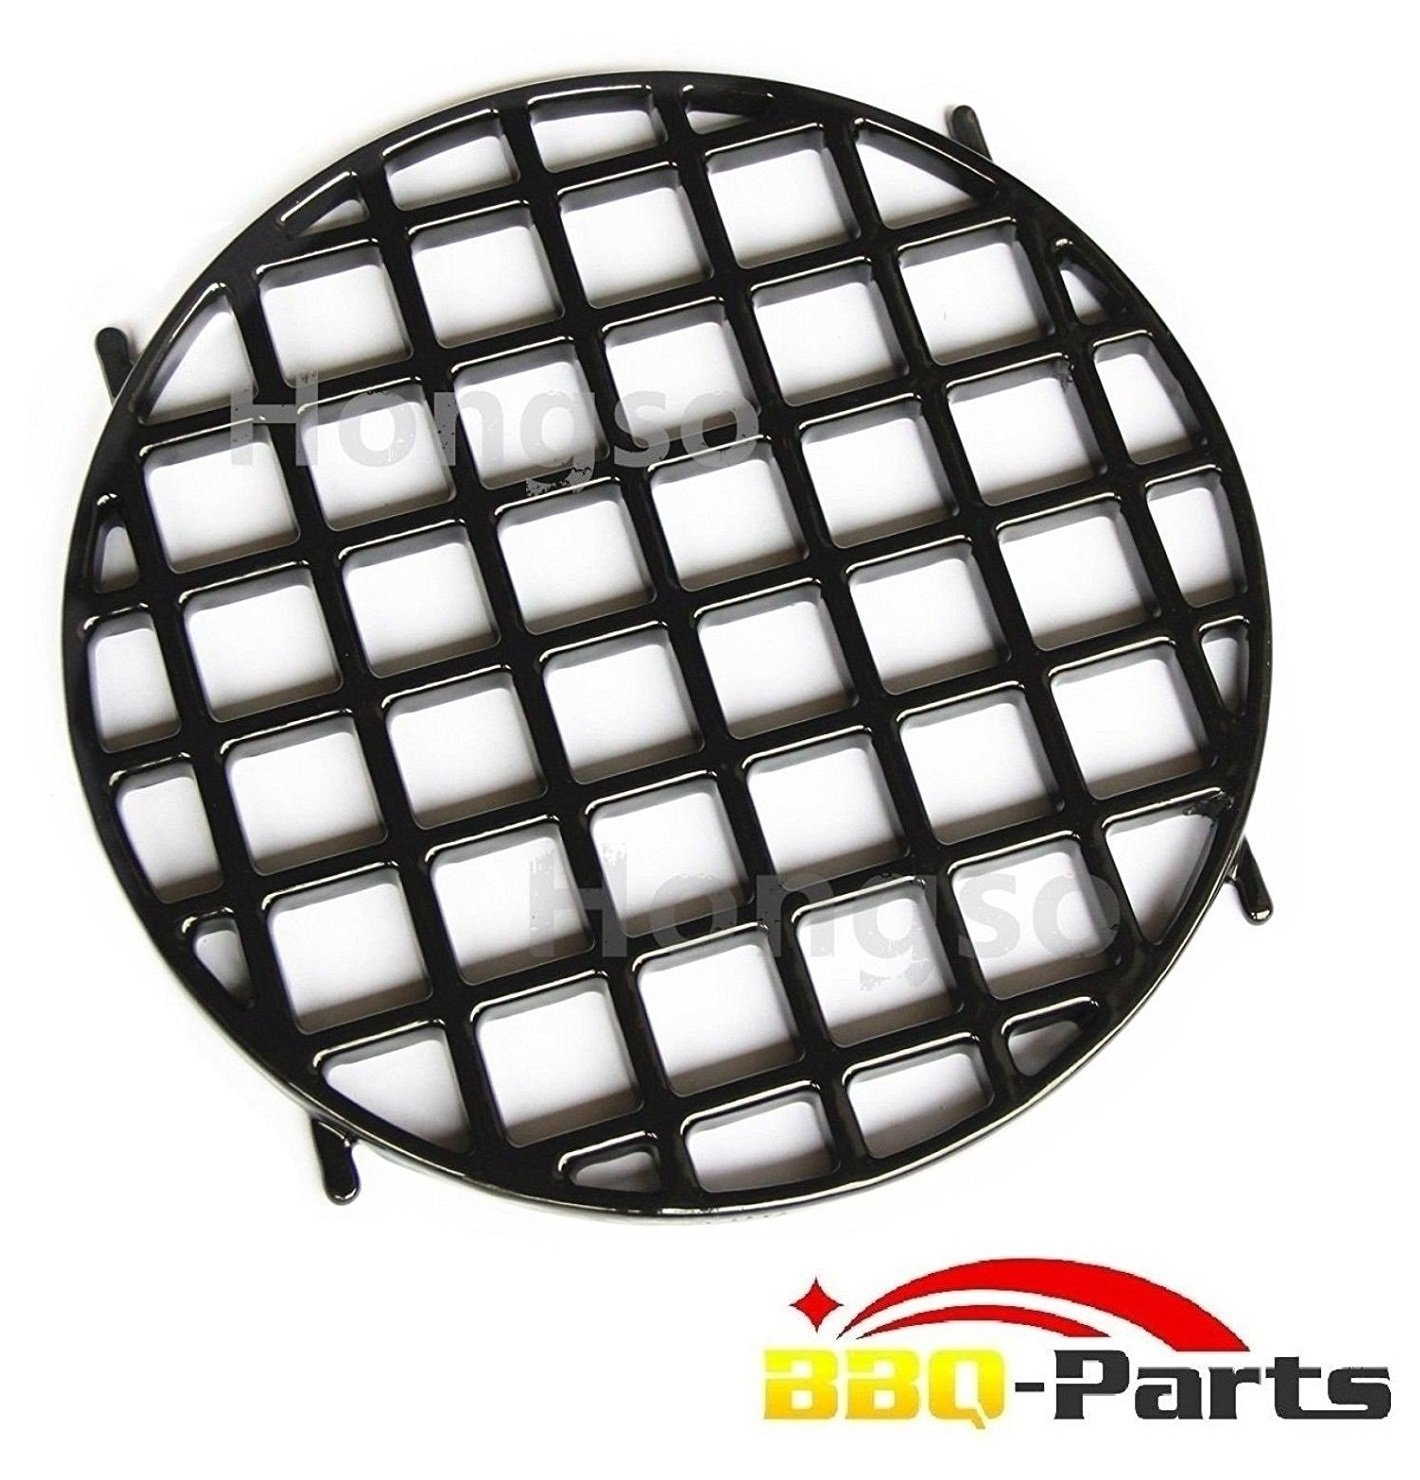 pch834 porcelain coated cast iron cooking grid replacement for weber ebay. Black Bedroom Furniture Sets. Home Design Ideas